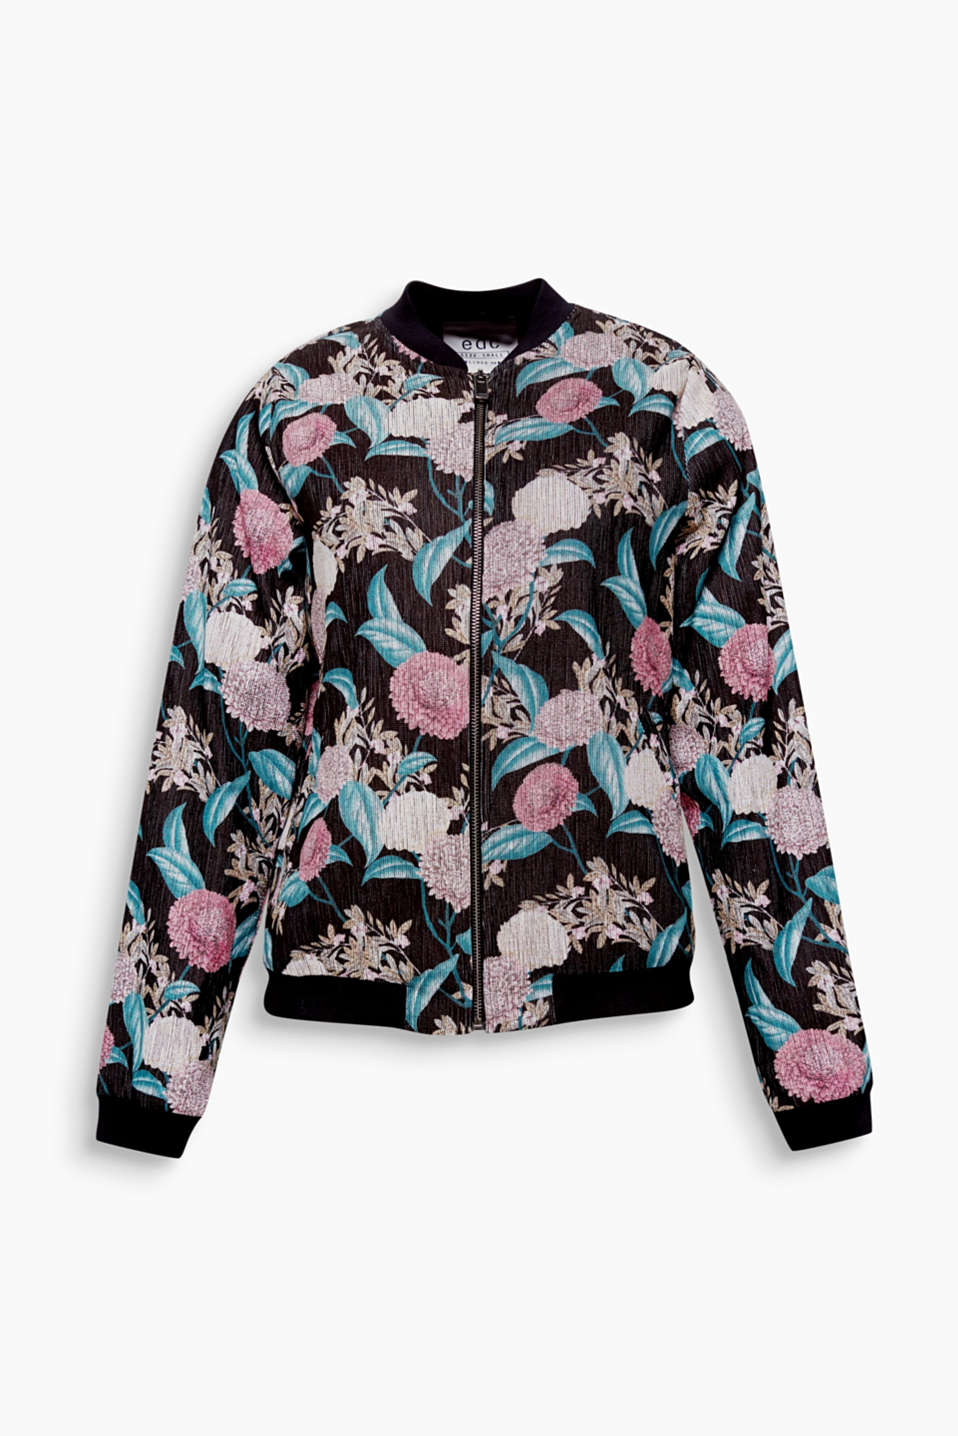 A sporty classic: the bomber jacket. The all-over floral print makes this one super special.